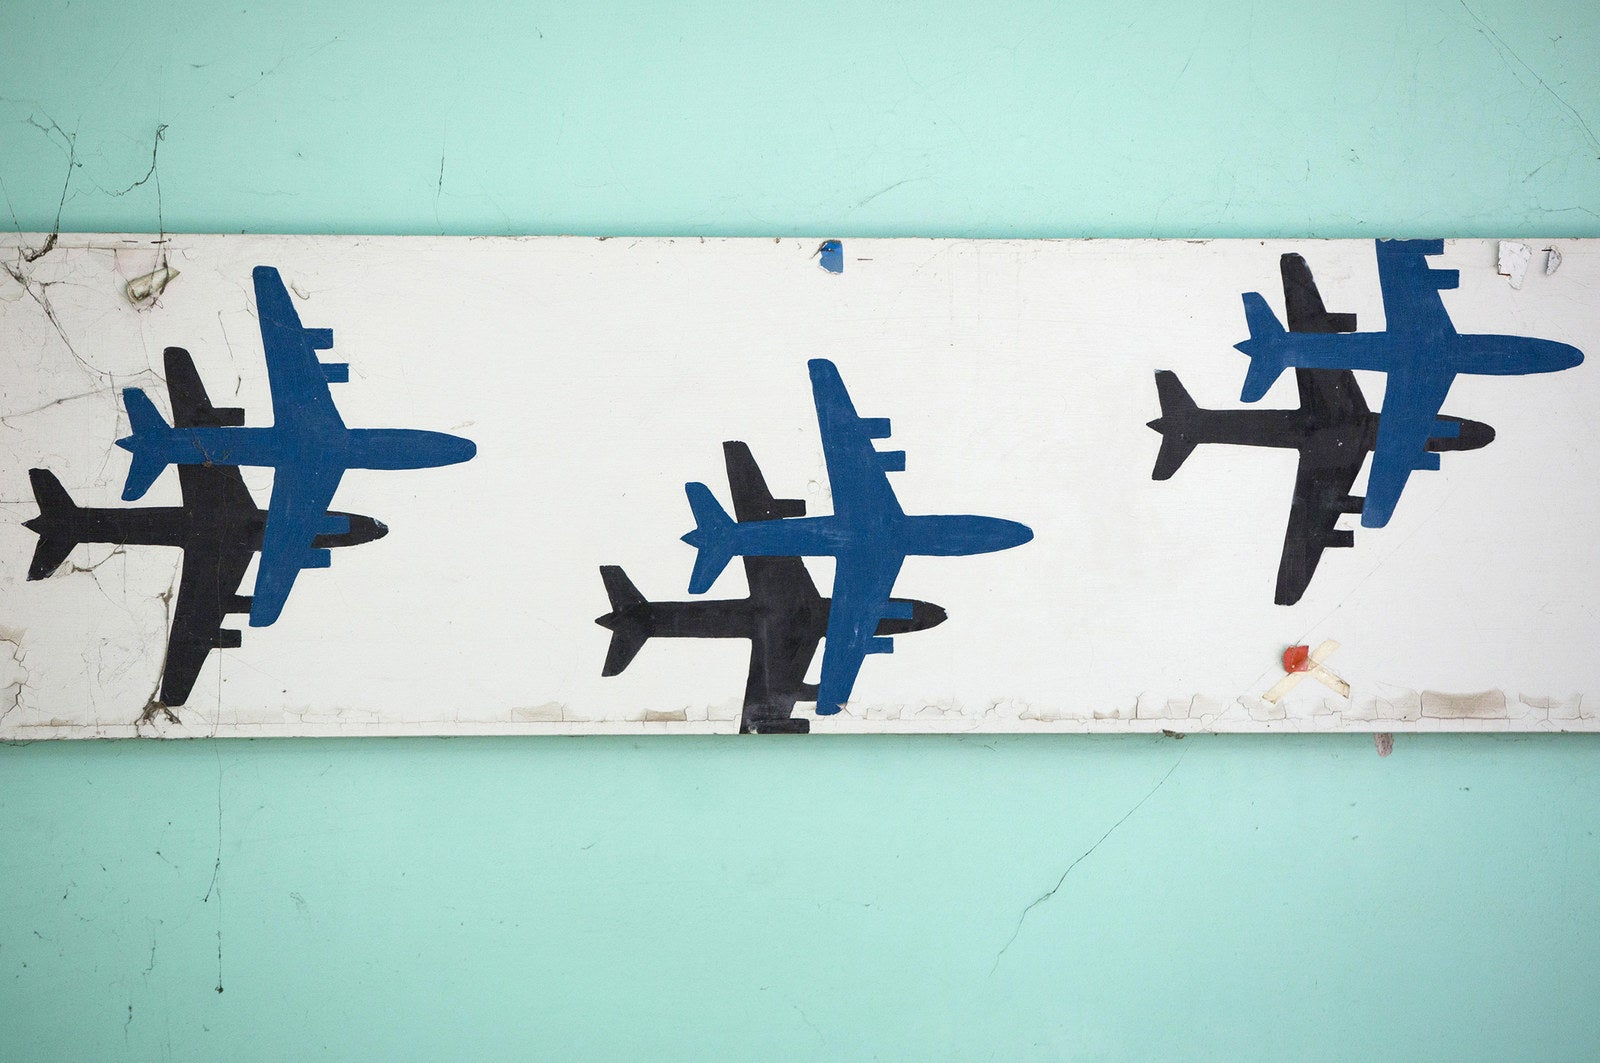 Images of airplanes decorate a wall.